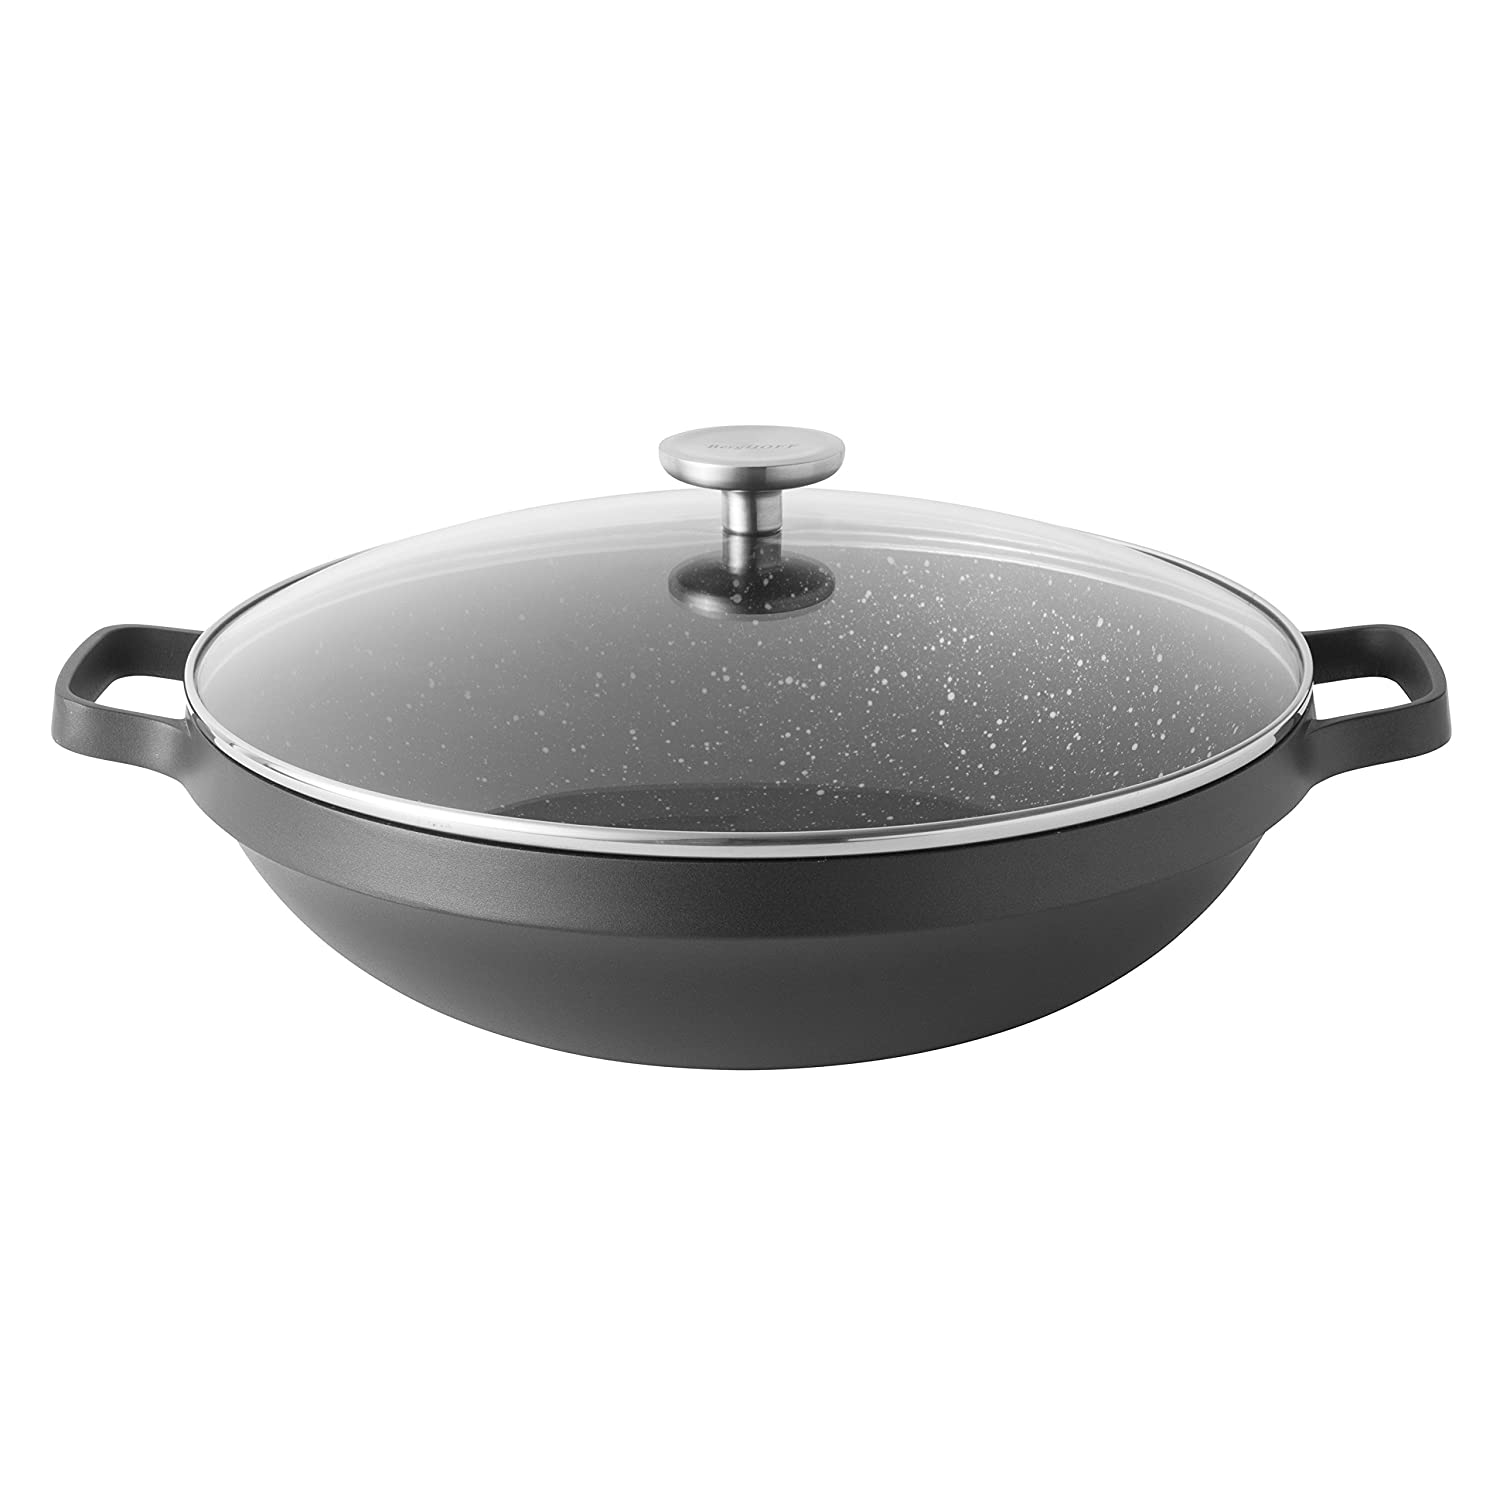 BergHOFF Gem Non-Stick Ceramic Coated Induction-Safe Two Handle Wok with Glass Lid, 32cm, Cast Aluminium, Black, 40 x 33 x 16.5 cm 2307316